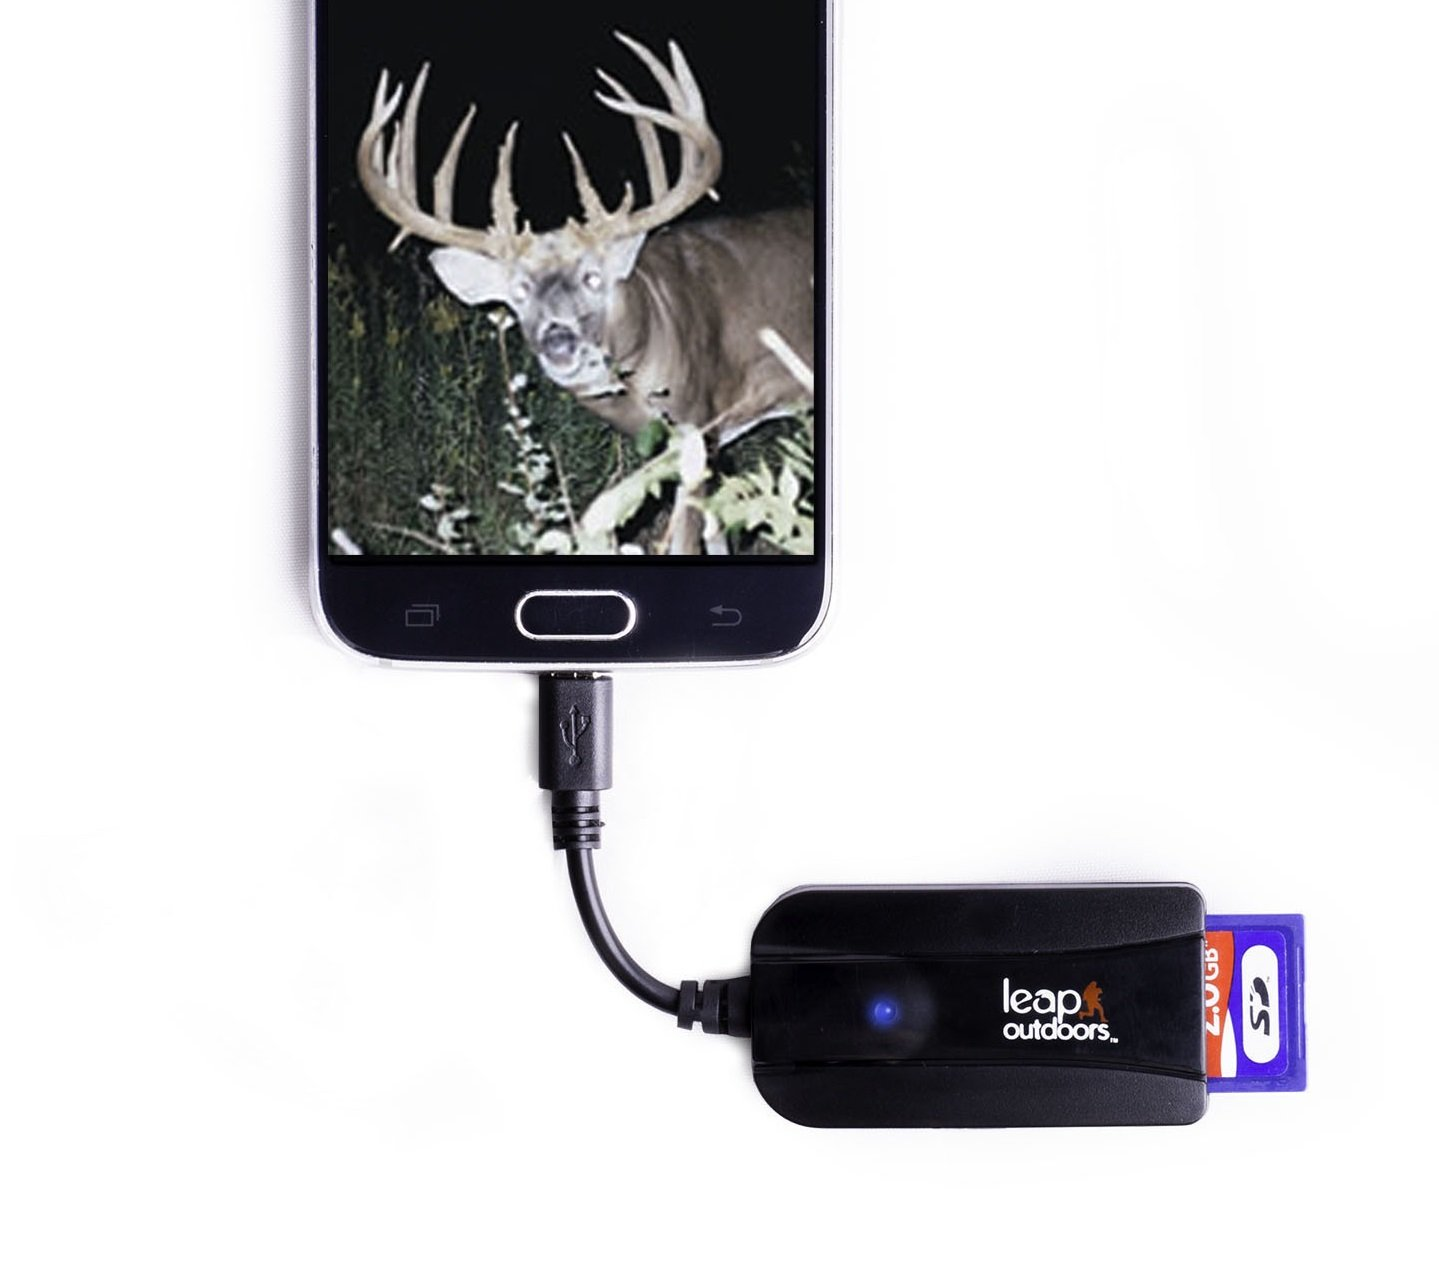 Leap Outdoors Trail Camera Viewer for Android Phones, View Photos and Videos, SD and Micro SD Memory Card Reader works with any trail camera. A deer hunter wildlife scouting must have!